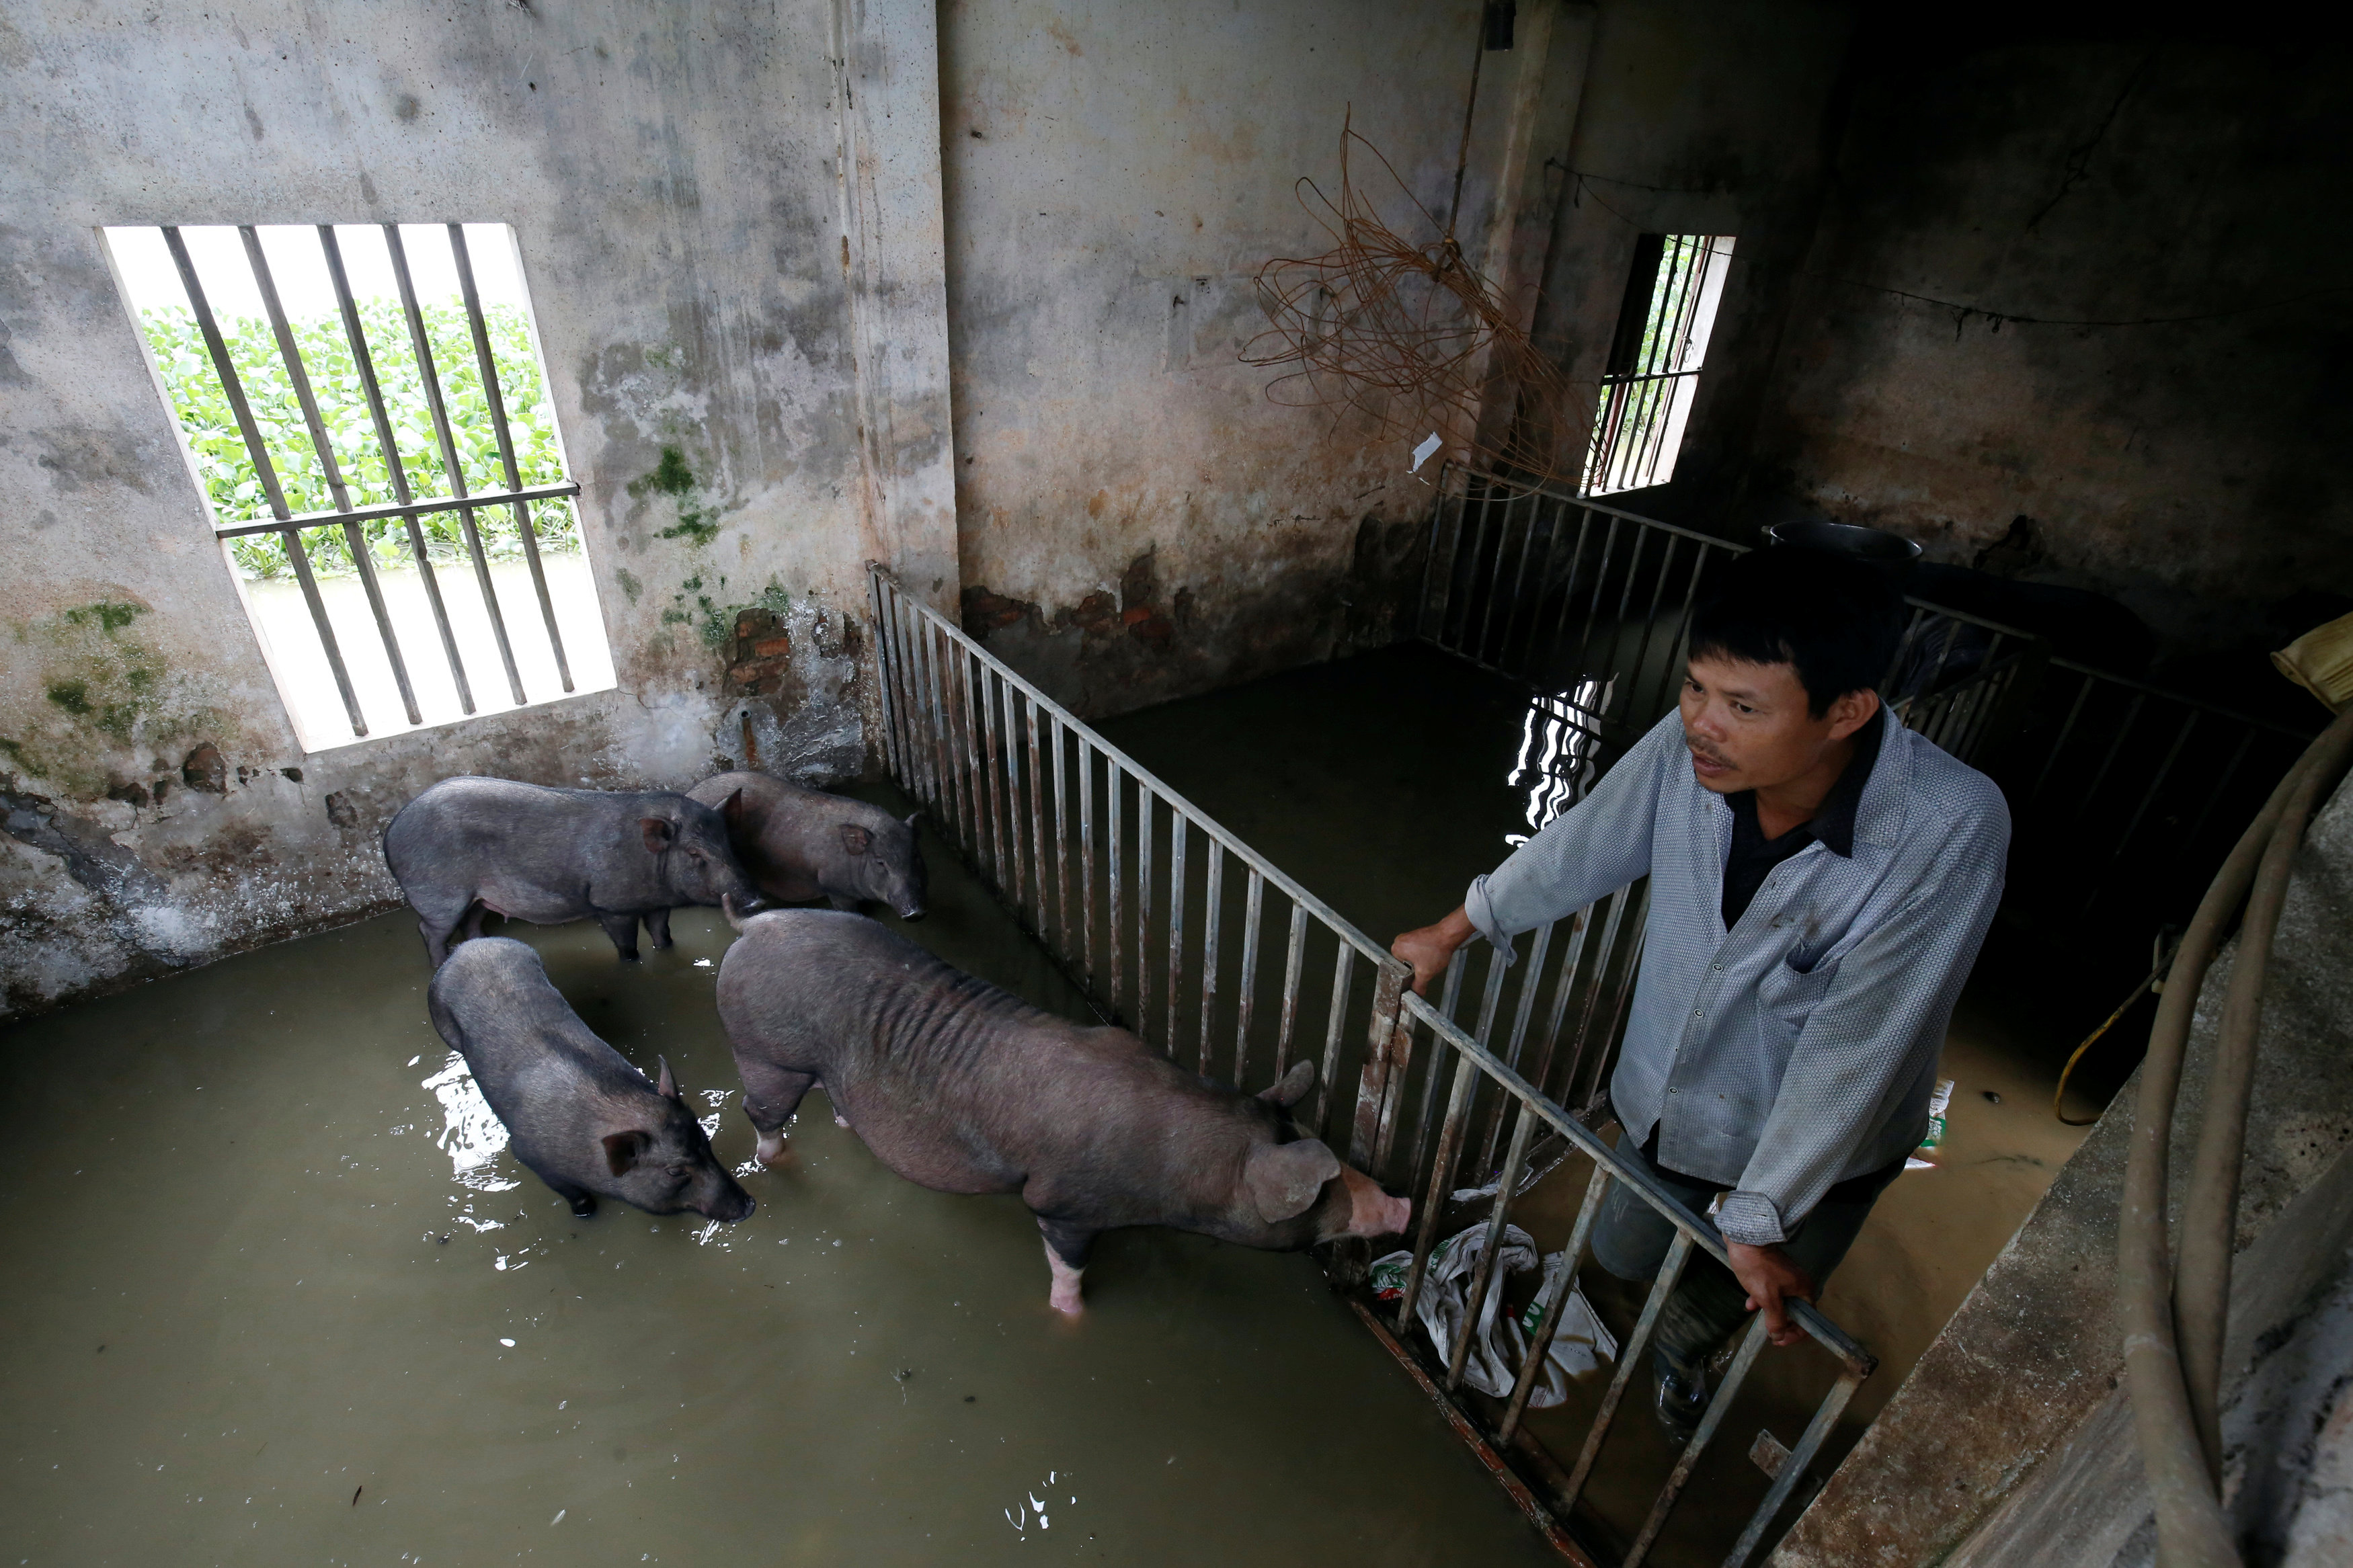 A farmer stands in his flooded pig farm after a tropical depression in Hanoi, Vietnam October 13, 2017. Photo: Reuters